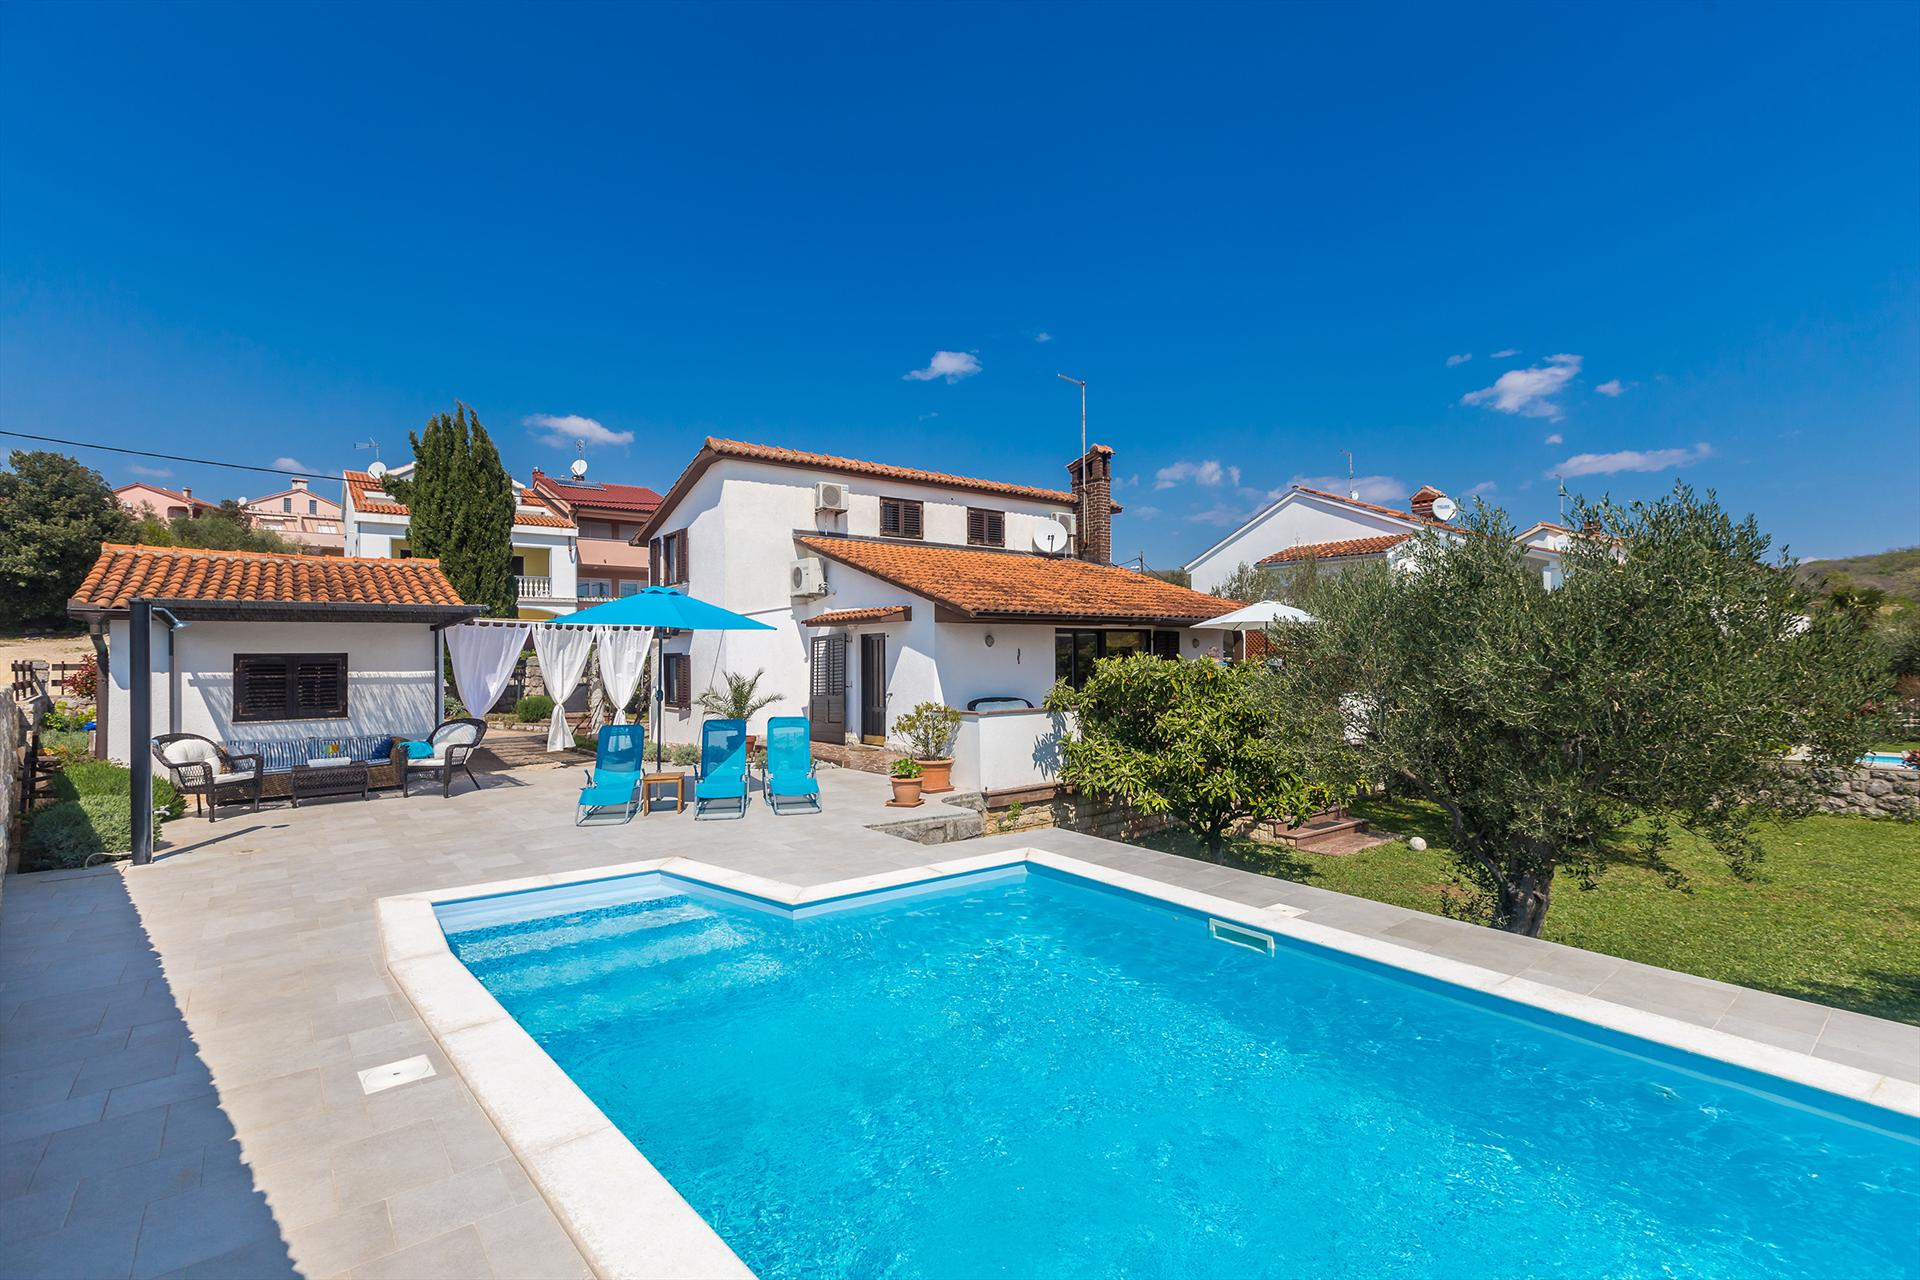 15101 Schönes Ferienhaus mit Pool in der Nähe von Strand, Lovely and comfortable holiday home in Kornić, Island Krk, Croatia  with private pool for 6 persons...